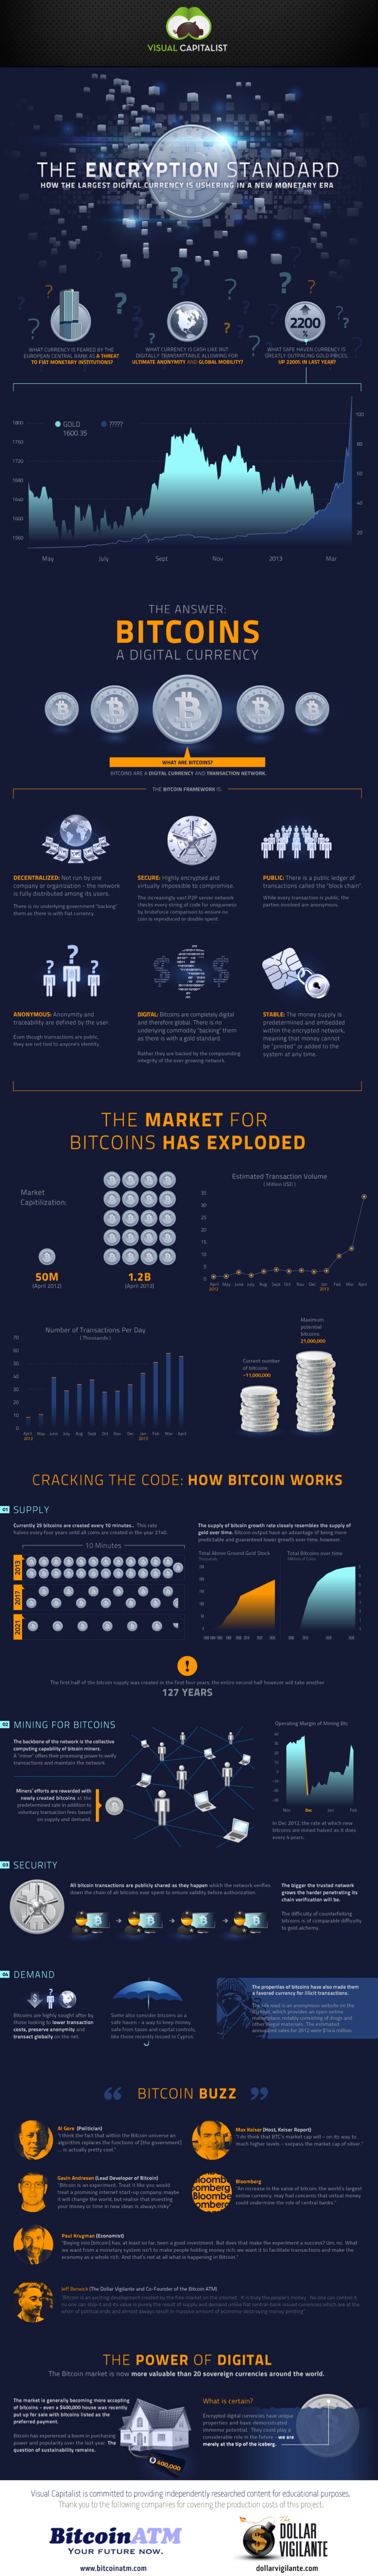 Infographic: Bitcoin